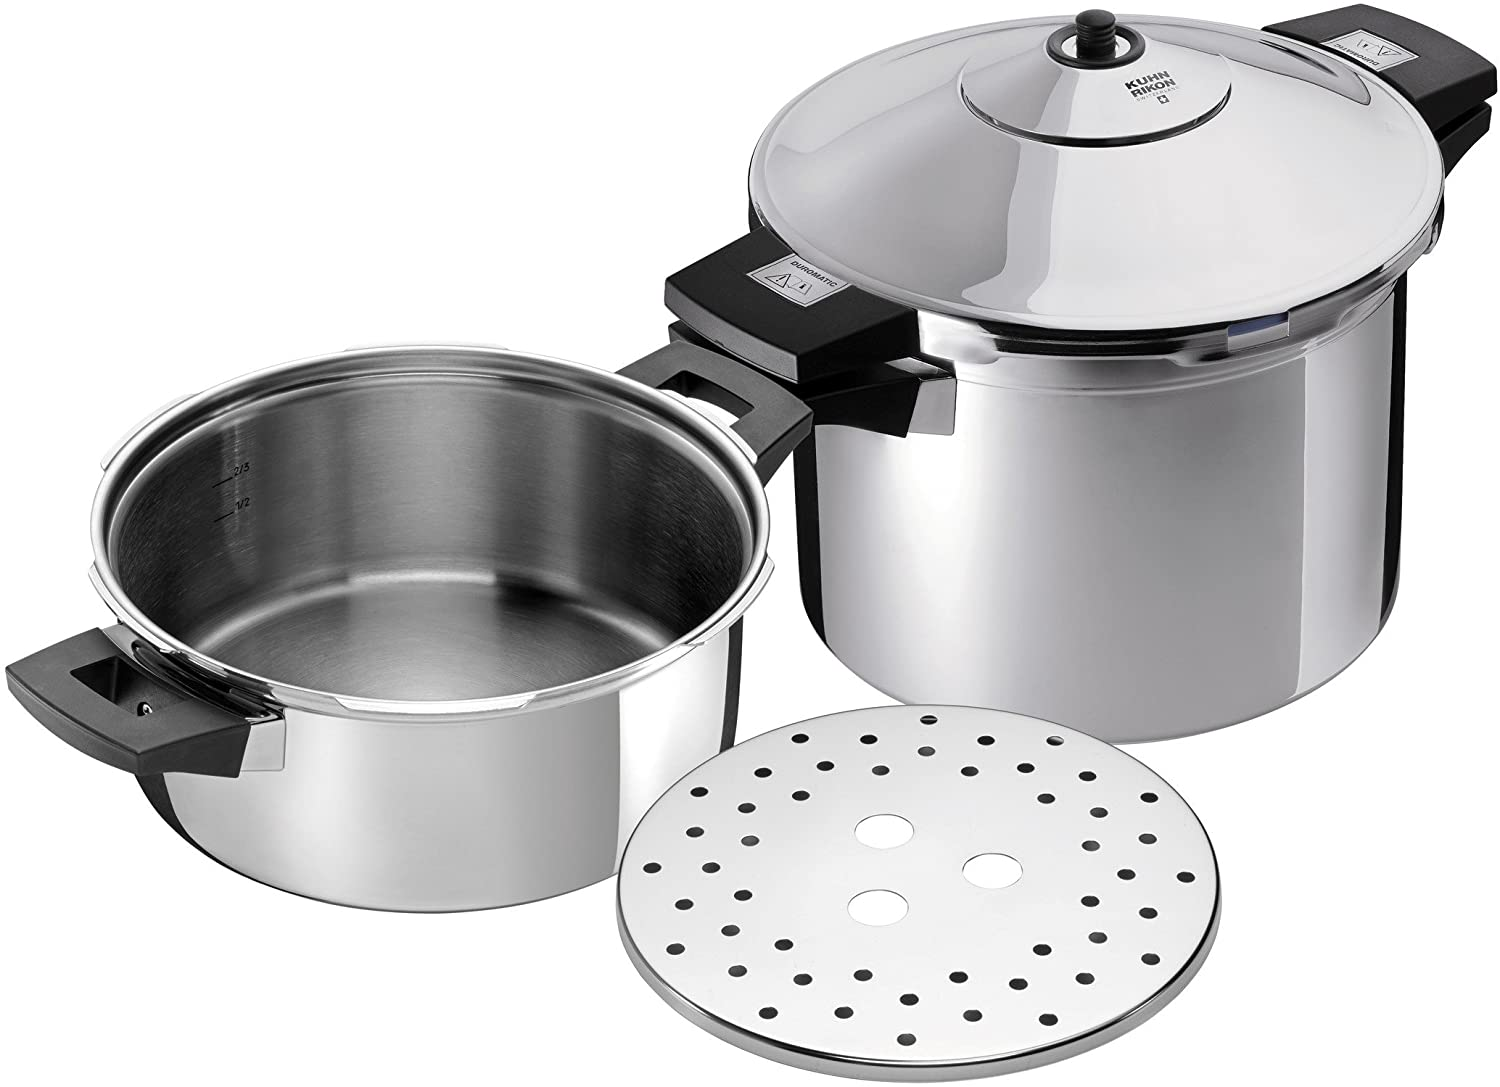 Kuhn Rikon Pressure Cooker Set Duromatic INOX mit Seitengriff 4 & 6 Litre, Set of 2-4 Litre/24 cm and 6 Litre/24 cm, Silver